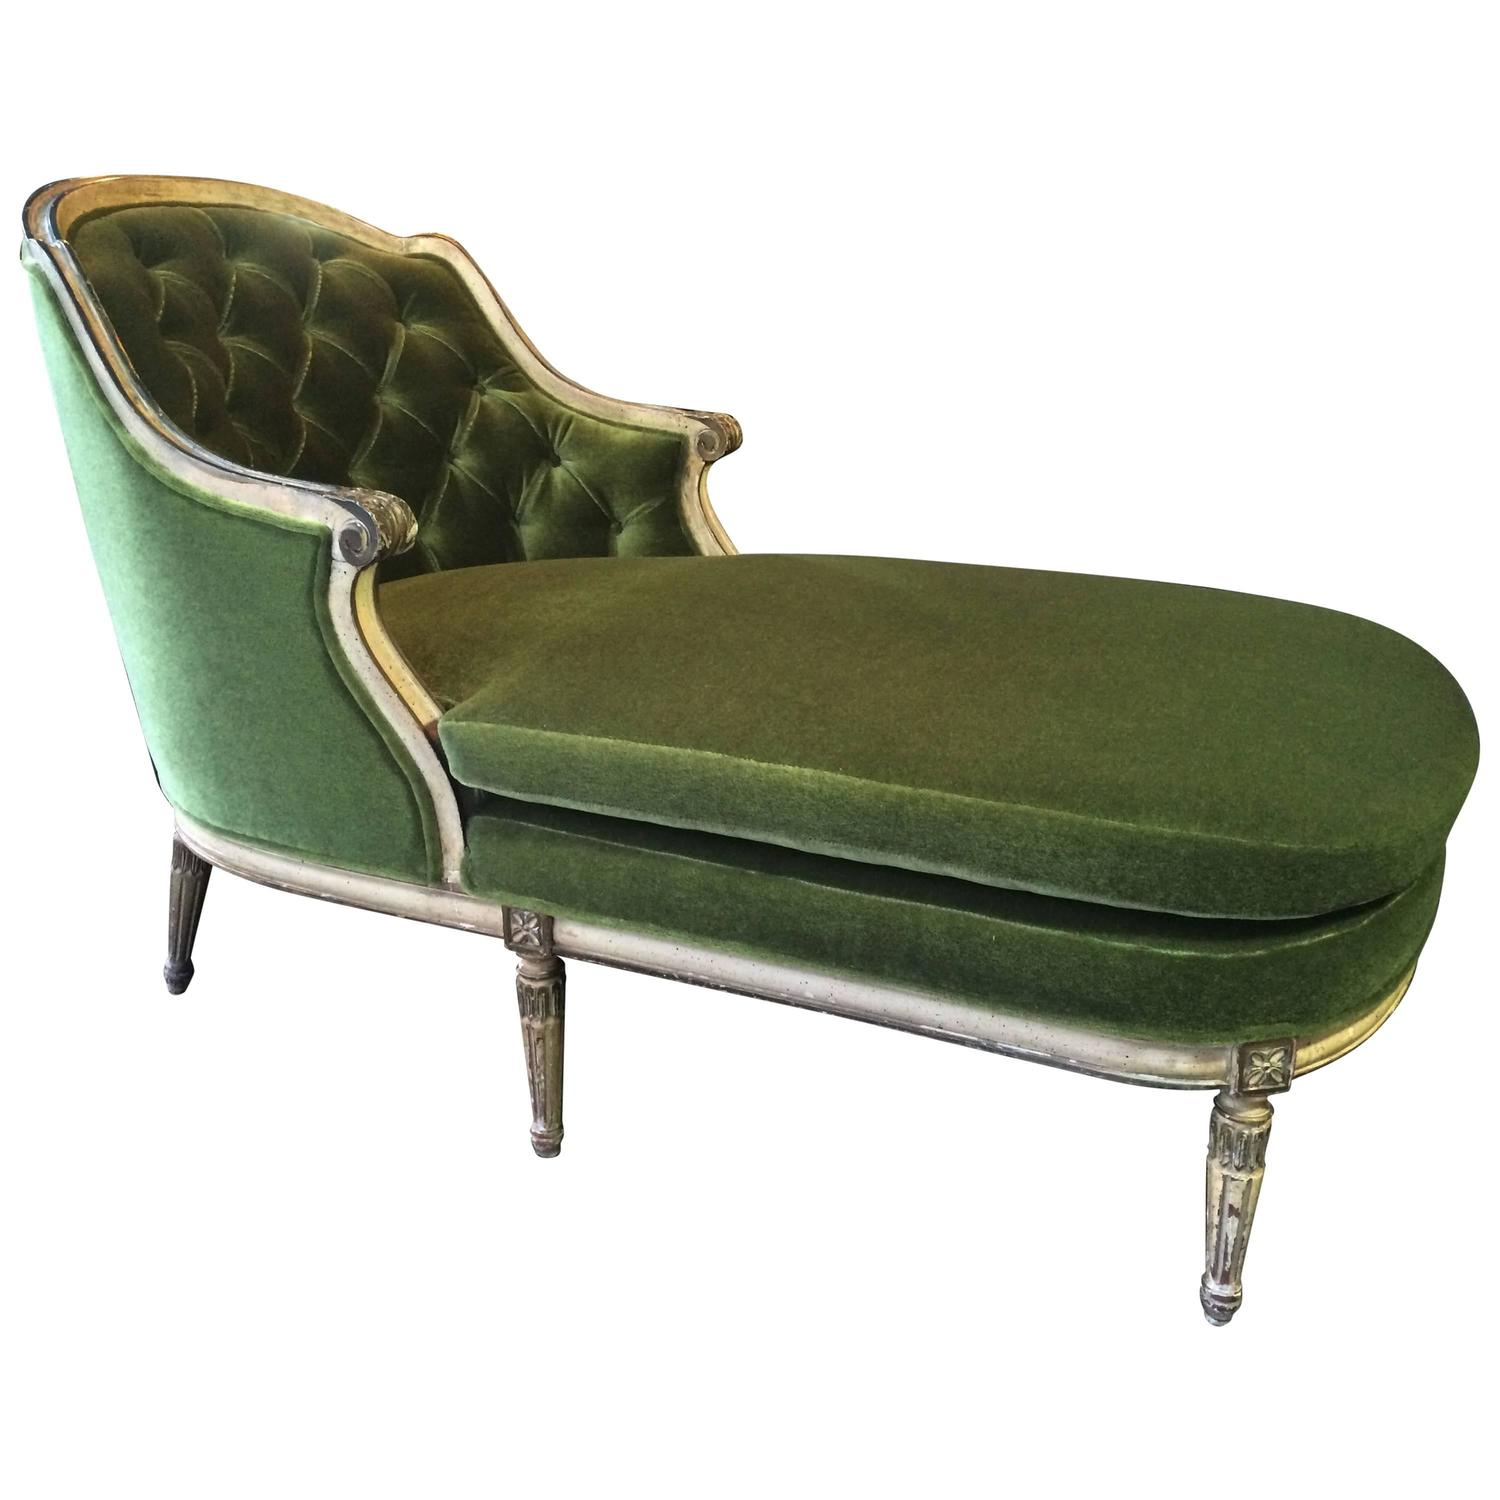 early 20th century louis xvi chaise longue for sale at 1stdibs. Black Bedroom Furniture Sets. Home Design Ideas